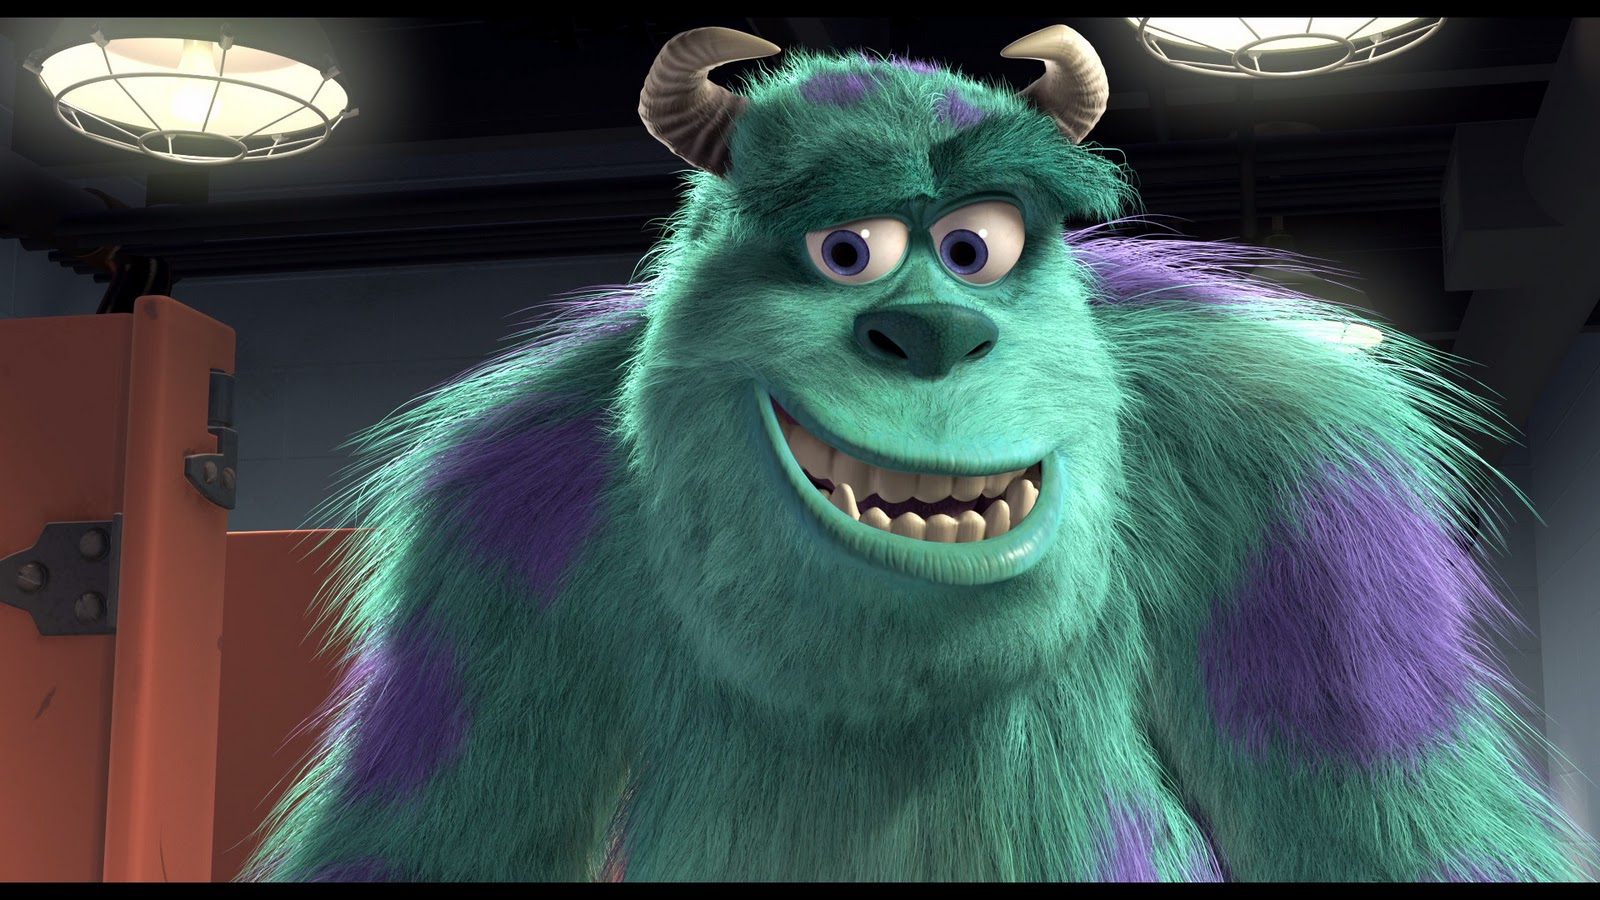 Monsters inc characters pictures Monsters, Inc. - 22 Cast Images Behind The Voice Actors